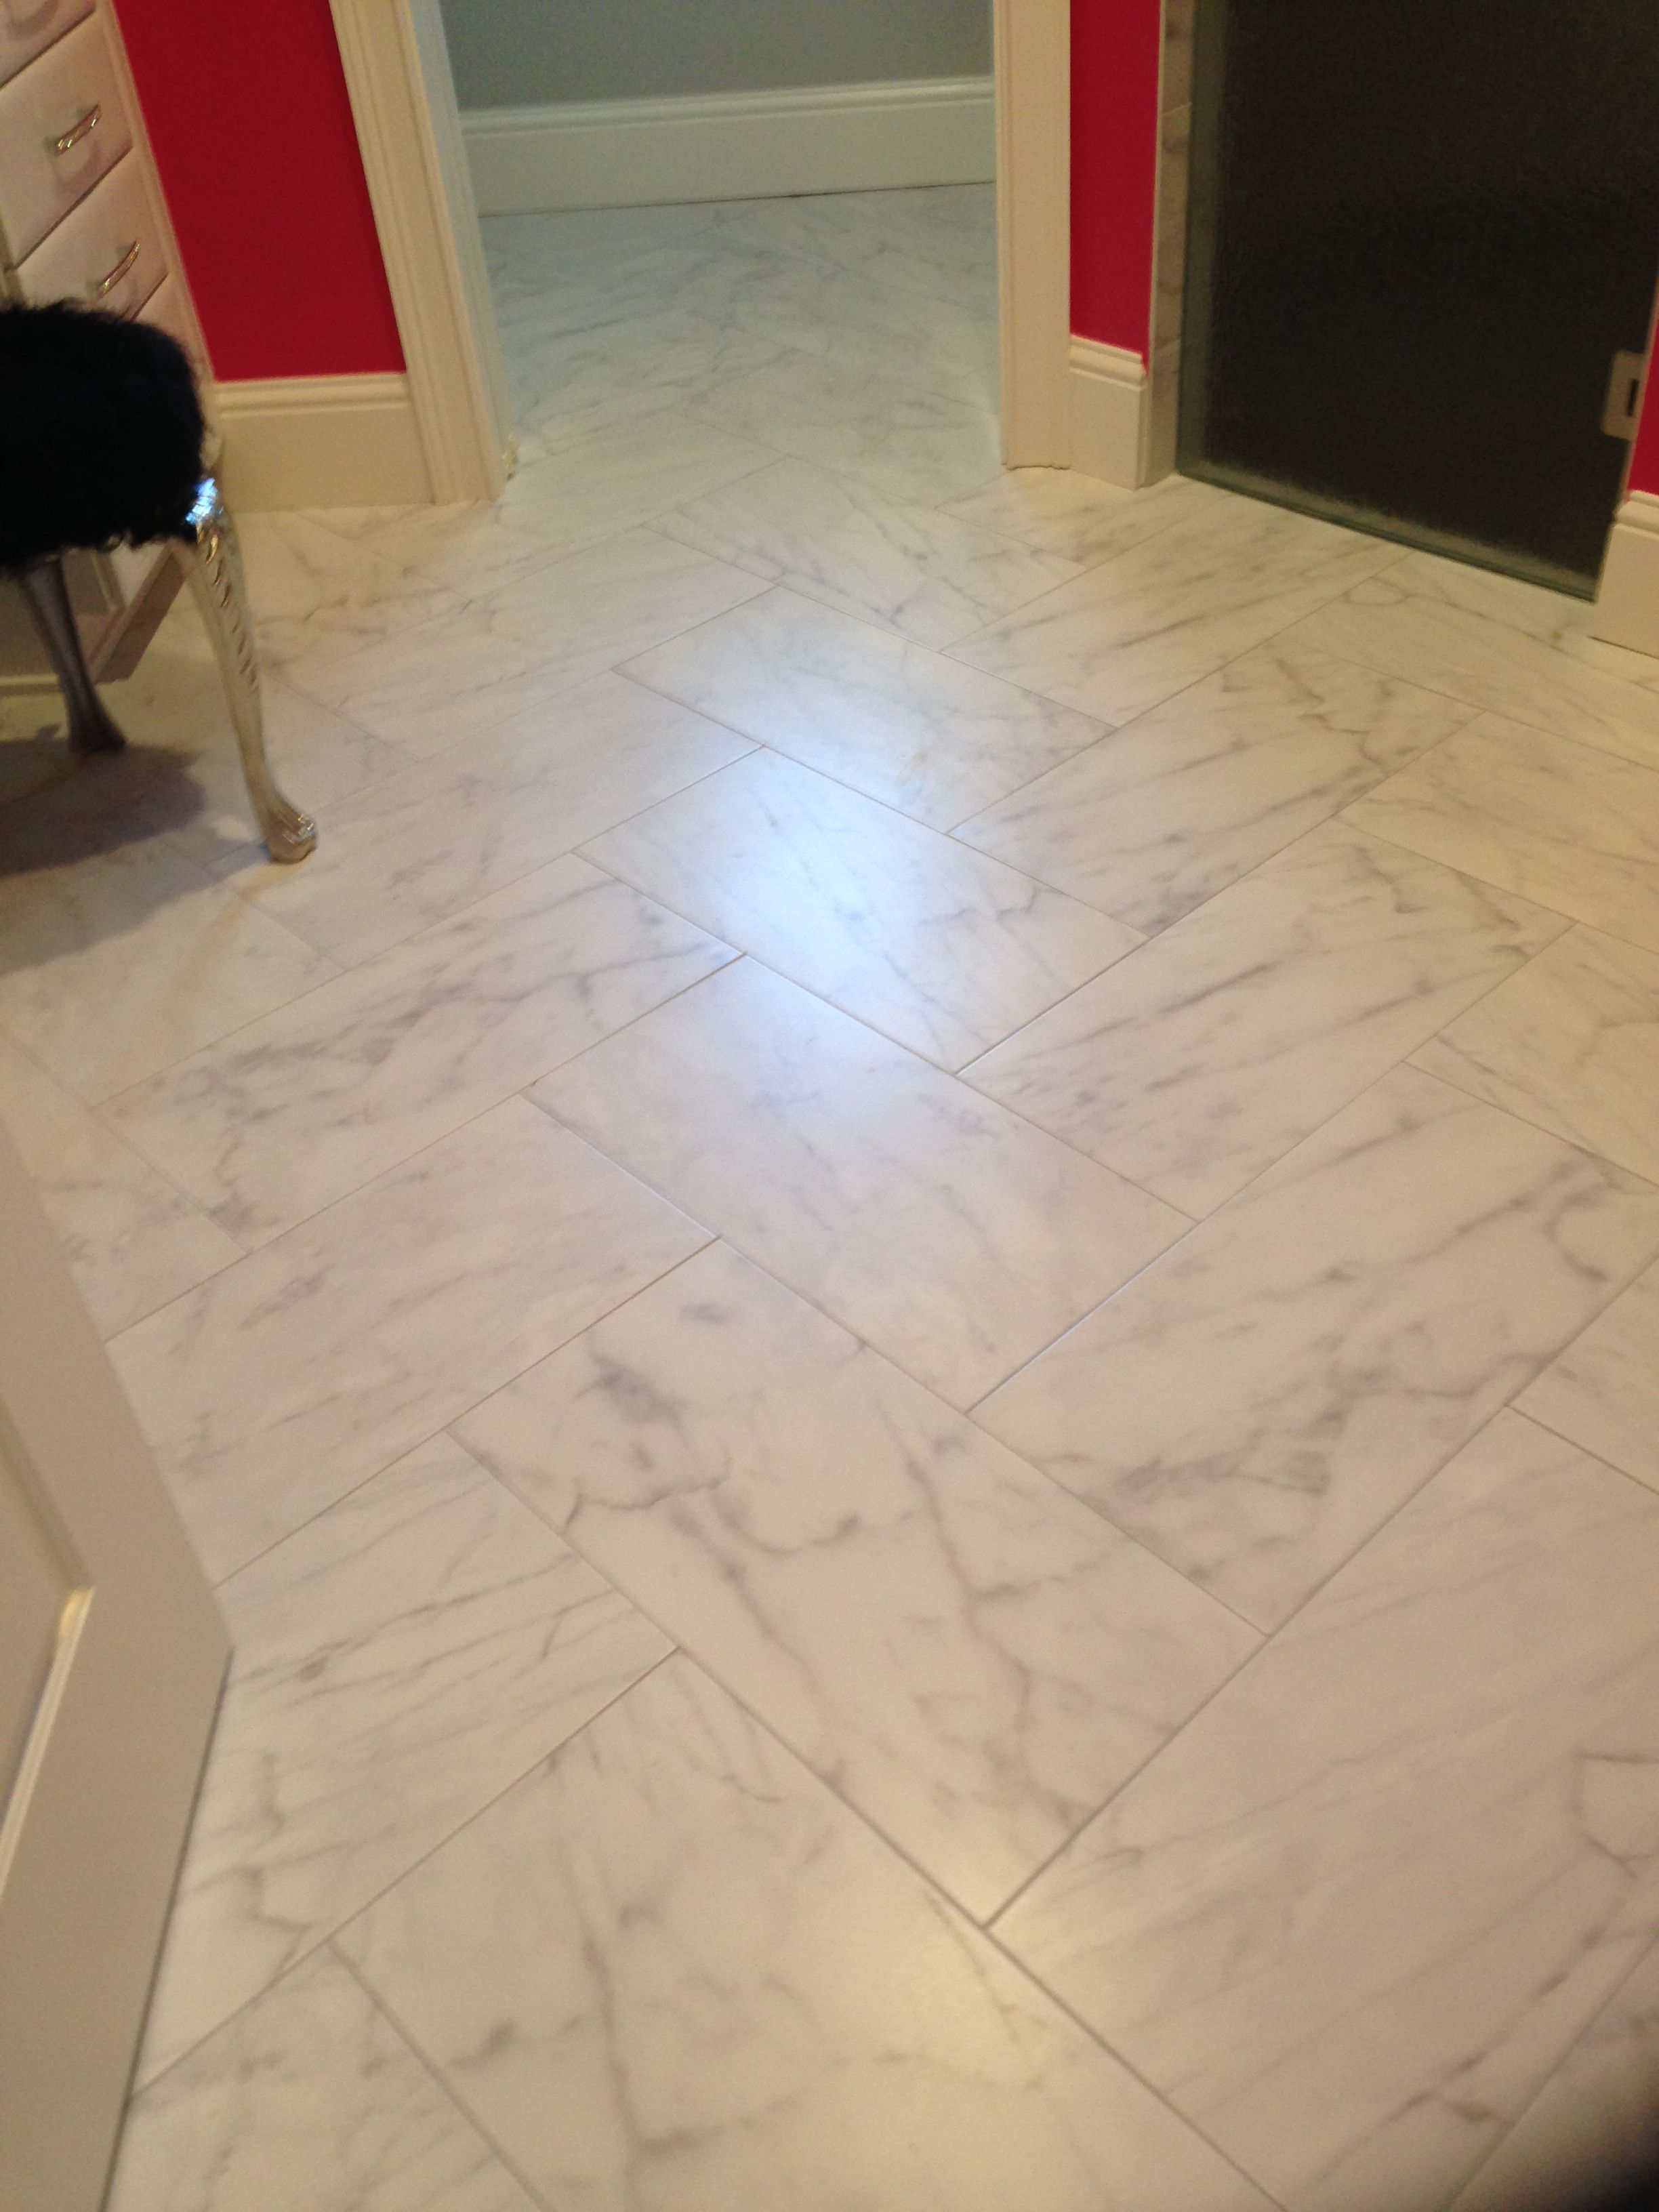 12 X 24 Carrara Look Porcelain Tile In Herringbone Pattern Herringbone Tile Floors Tile Floor Ceramic Floor Tile